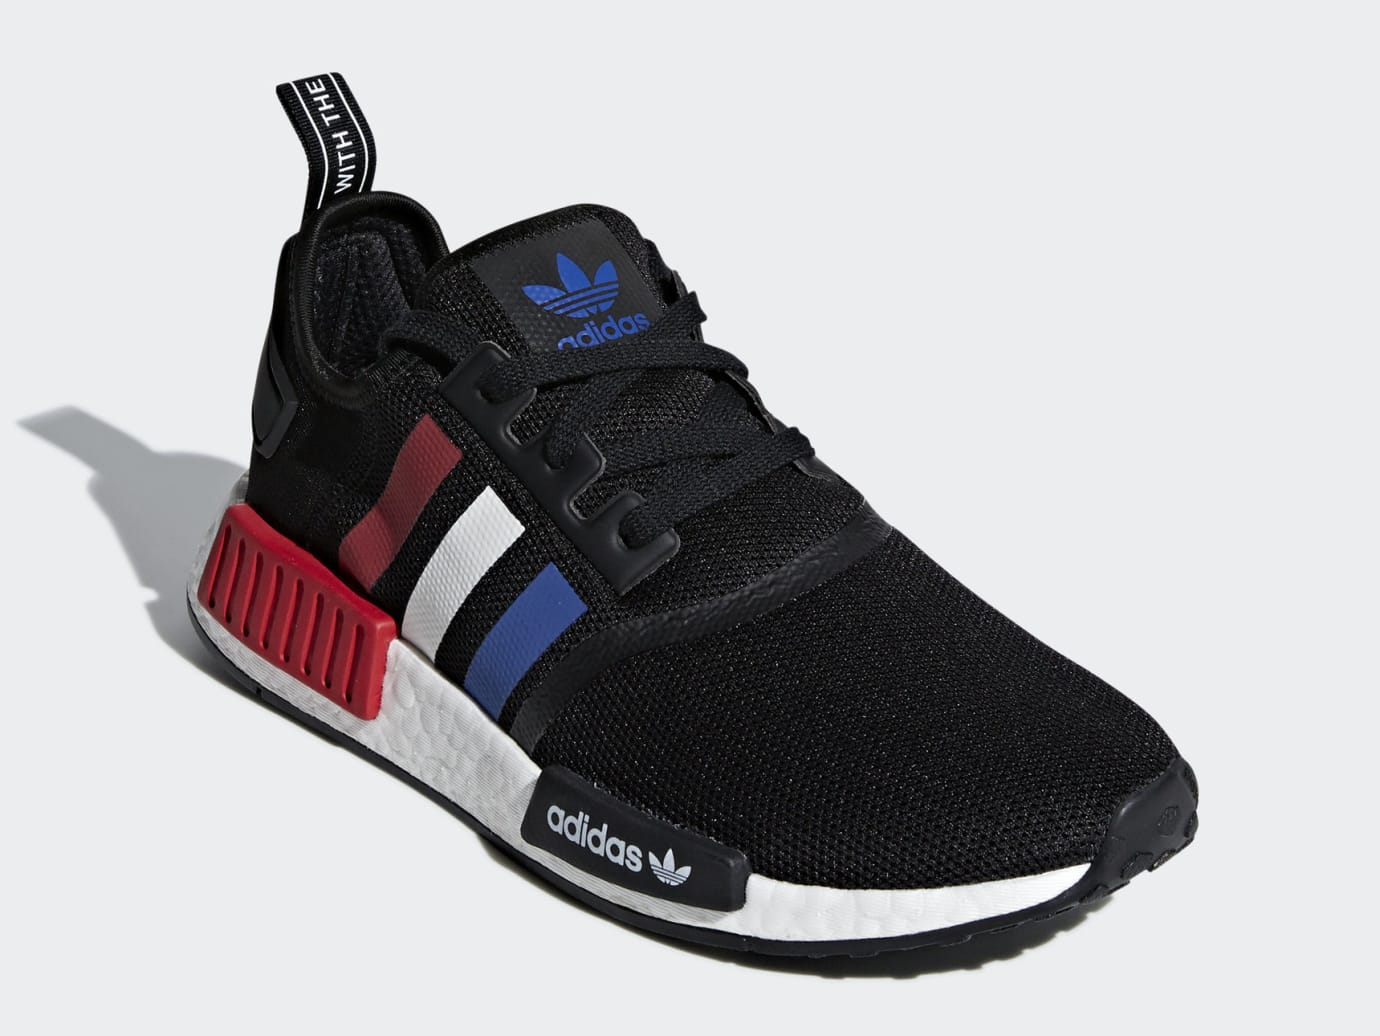 6c628fbcf7917 Image via Adidas Adidas NMD R1 Color Pack Tricolor Release Date F99712 Front